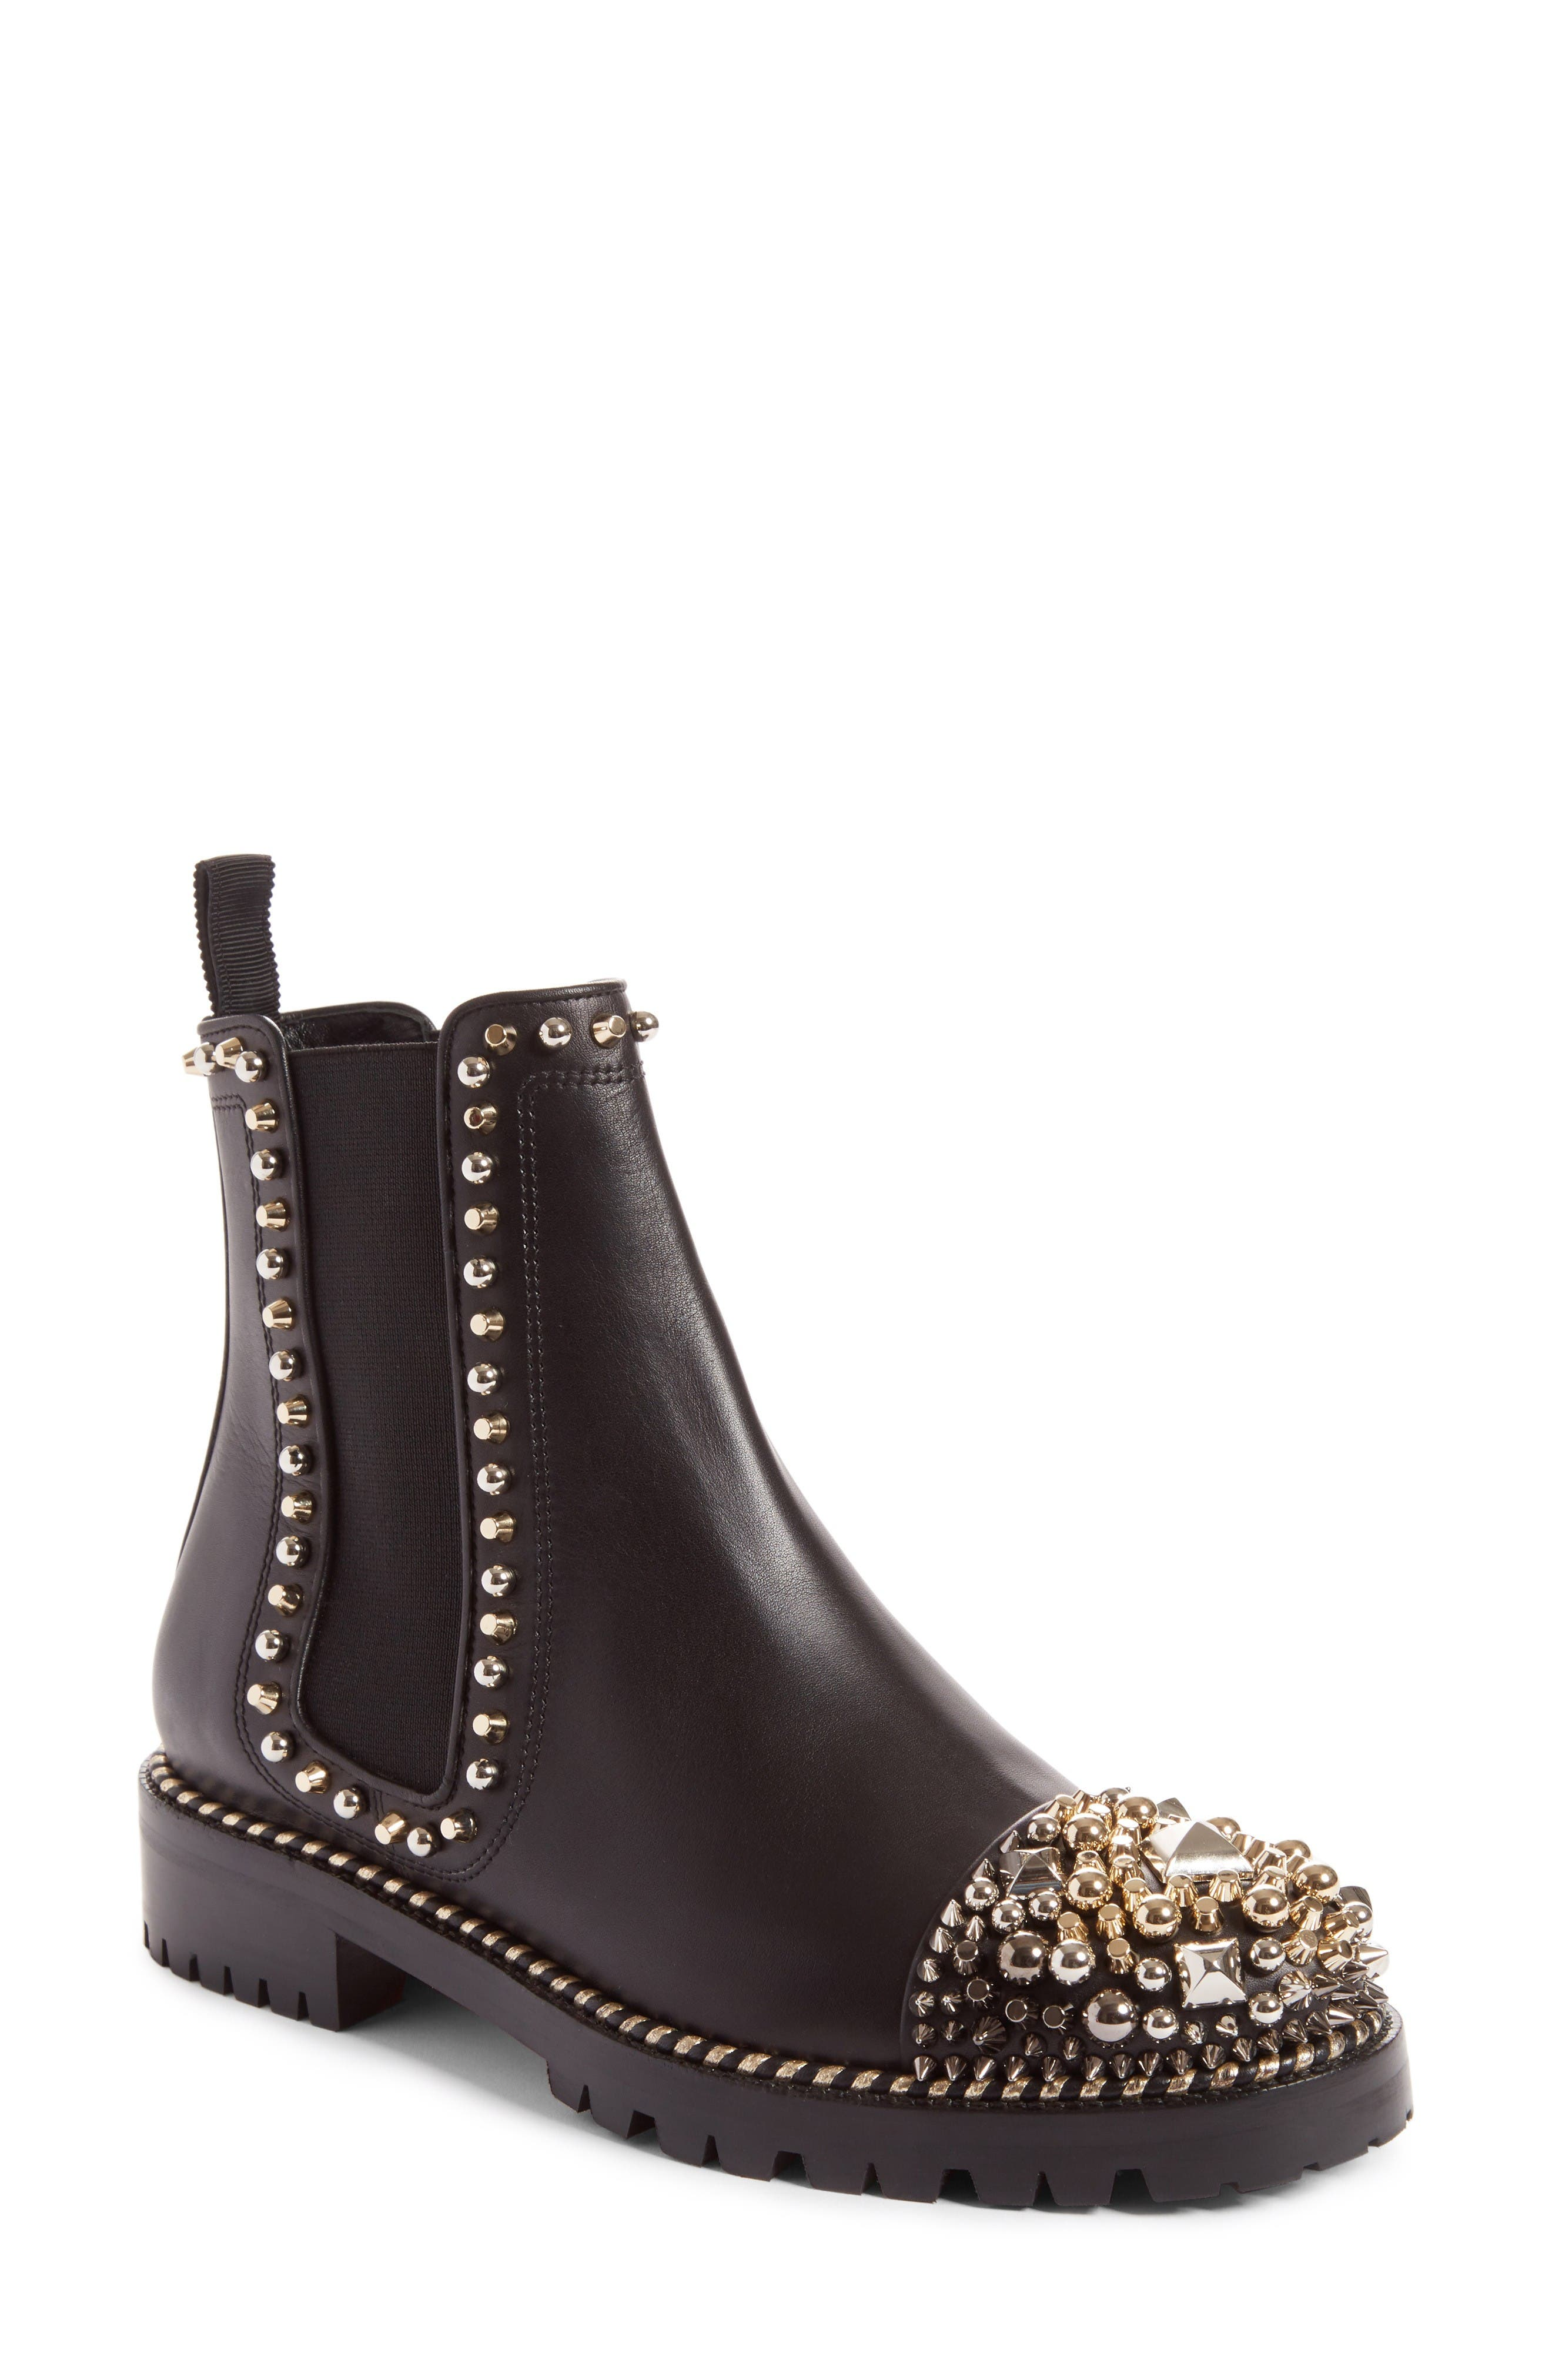 Christian Louboutin Chasse Stud Chelsea Boot (Women)